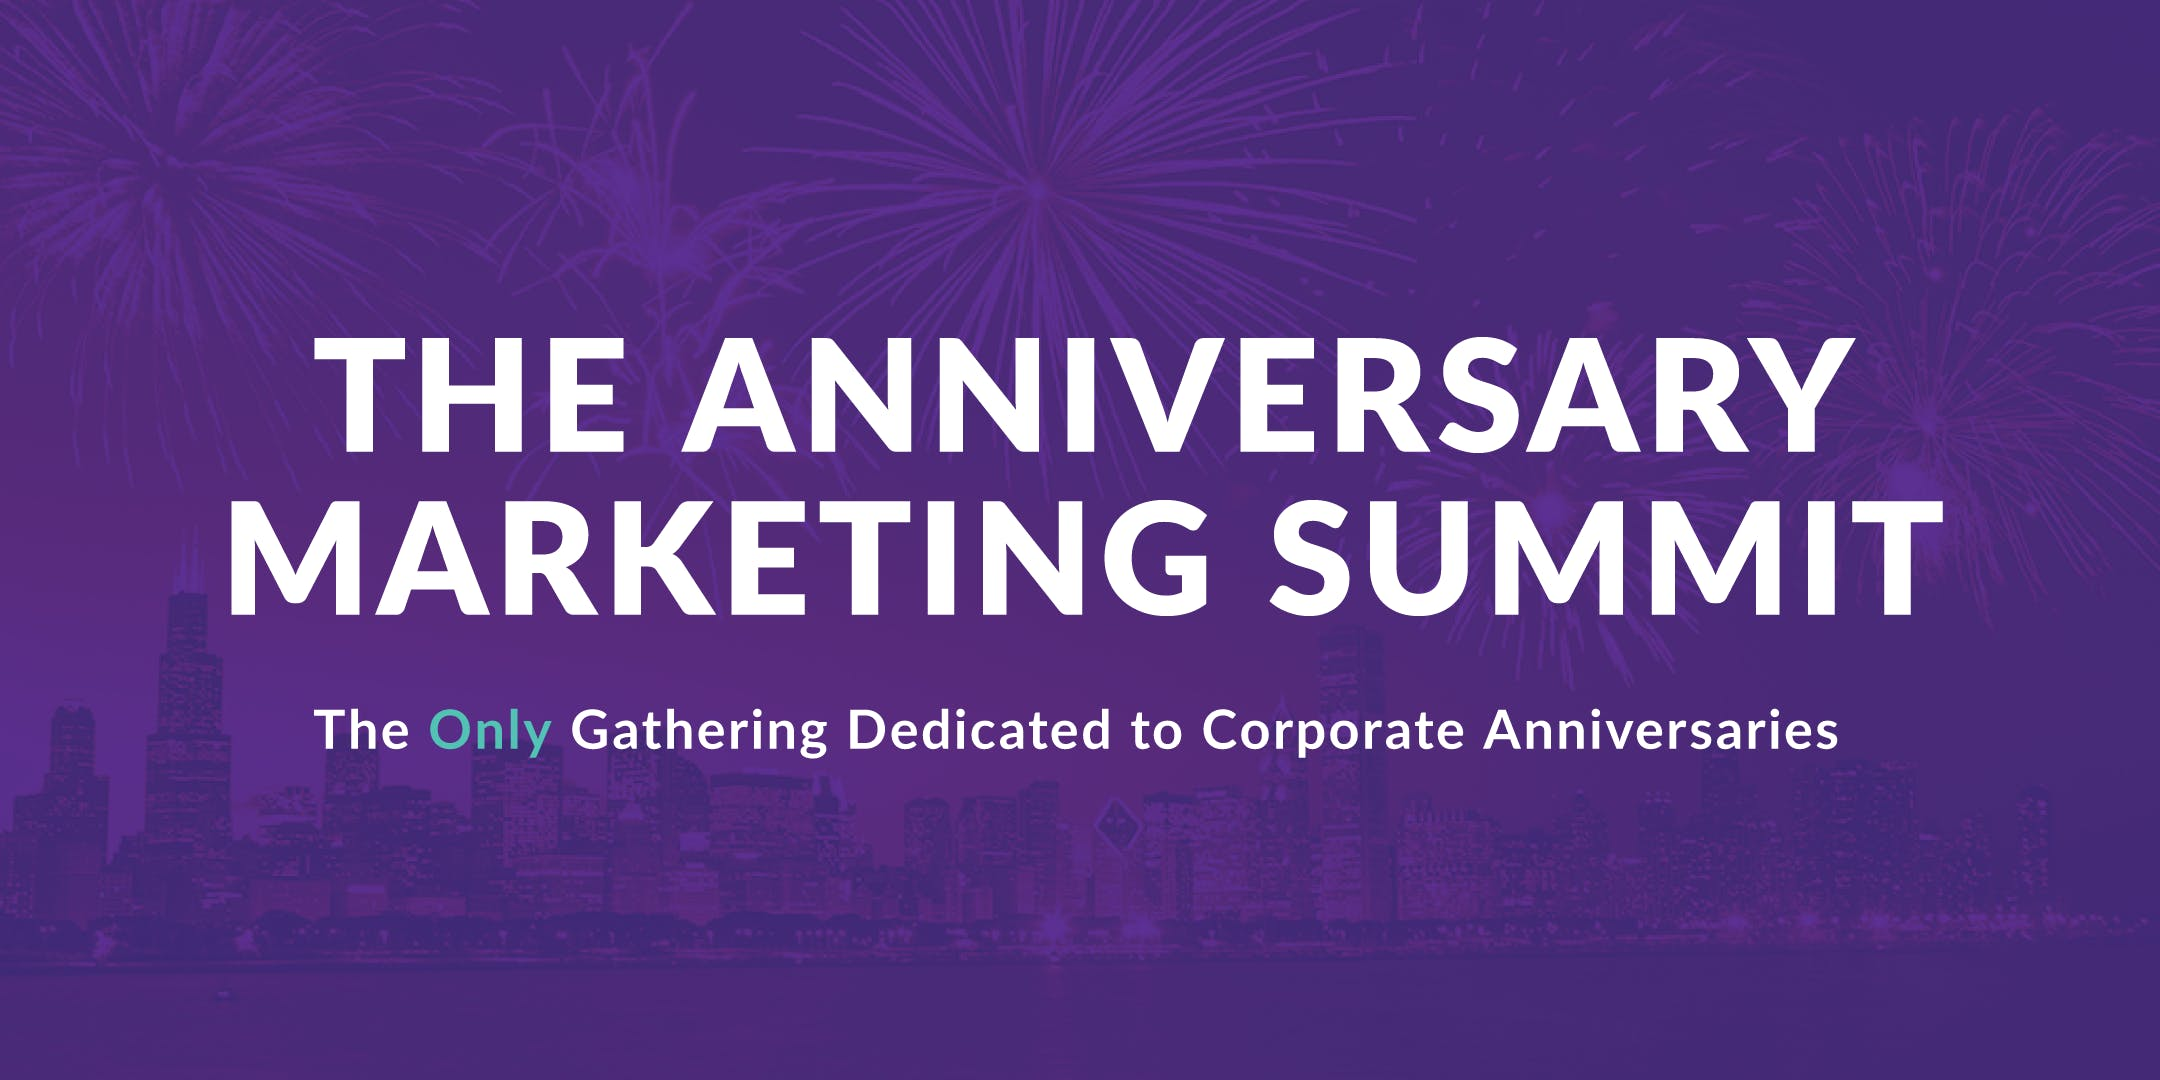 The 2018 Anniversary Marketing Summit